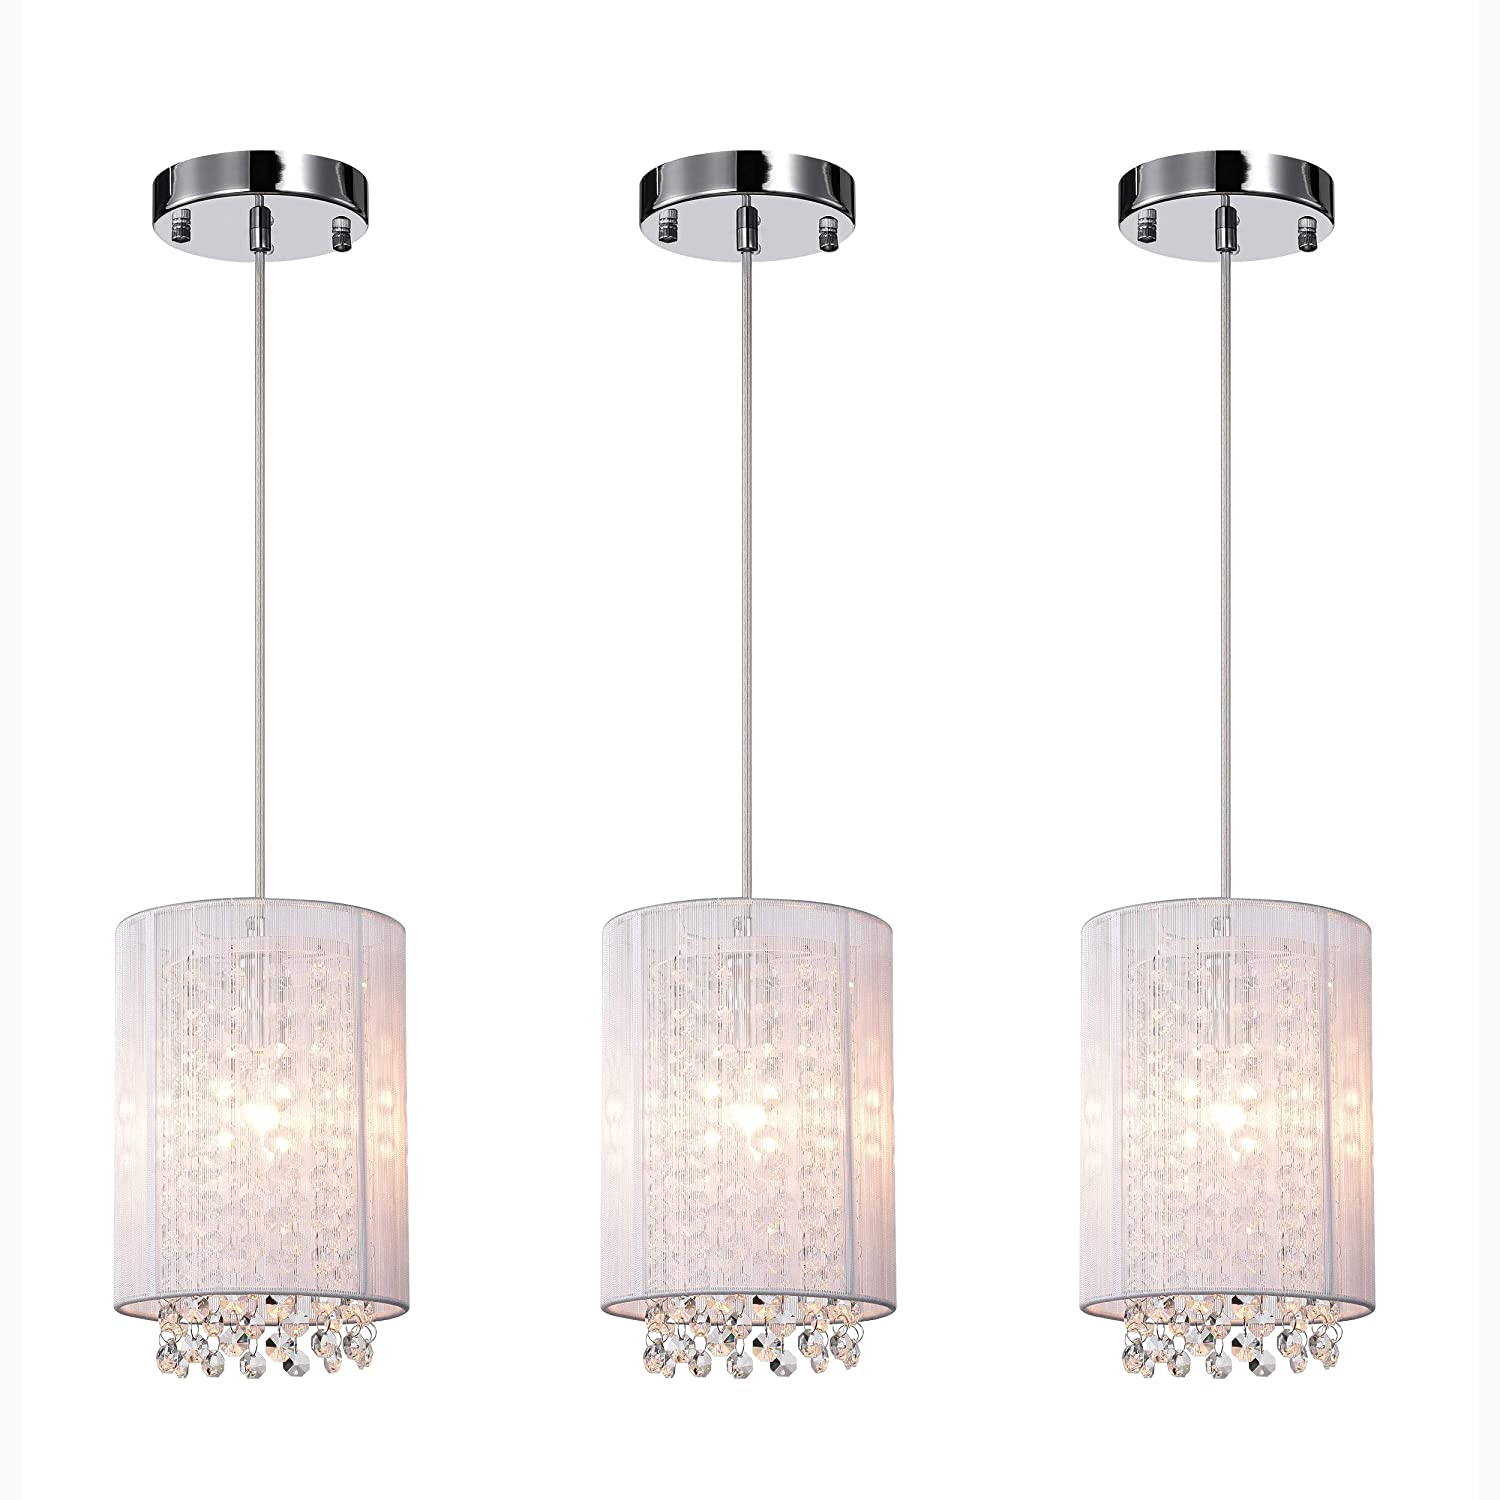 LaLuLa Pendant Lighting White Modern Chandeliers 1 Light Ceiling Lights 3 Pcak